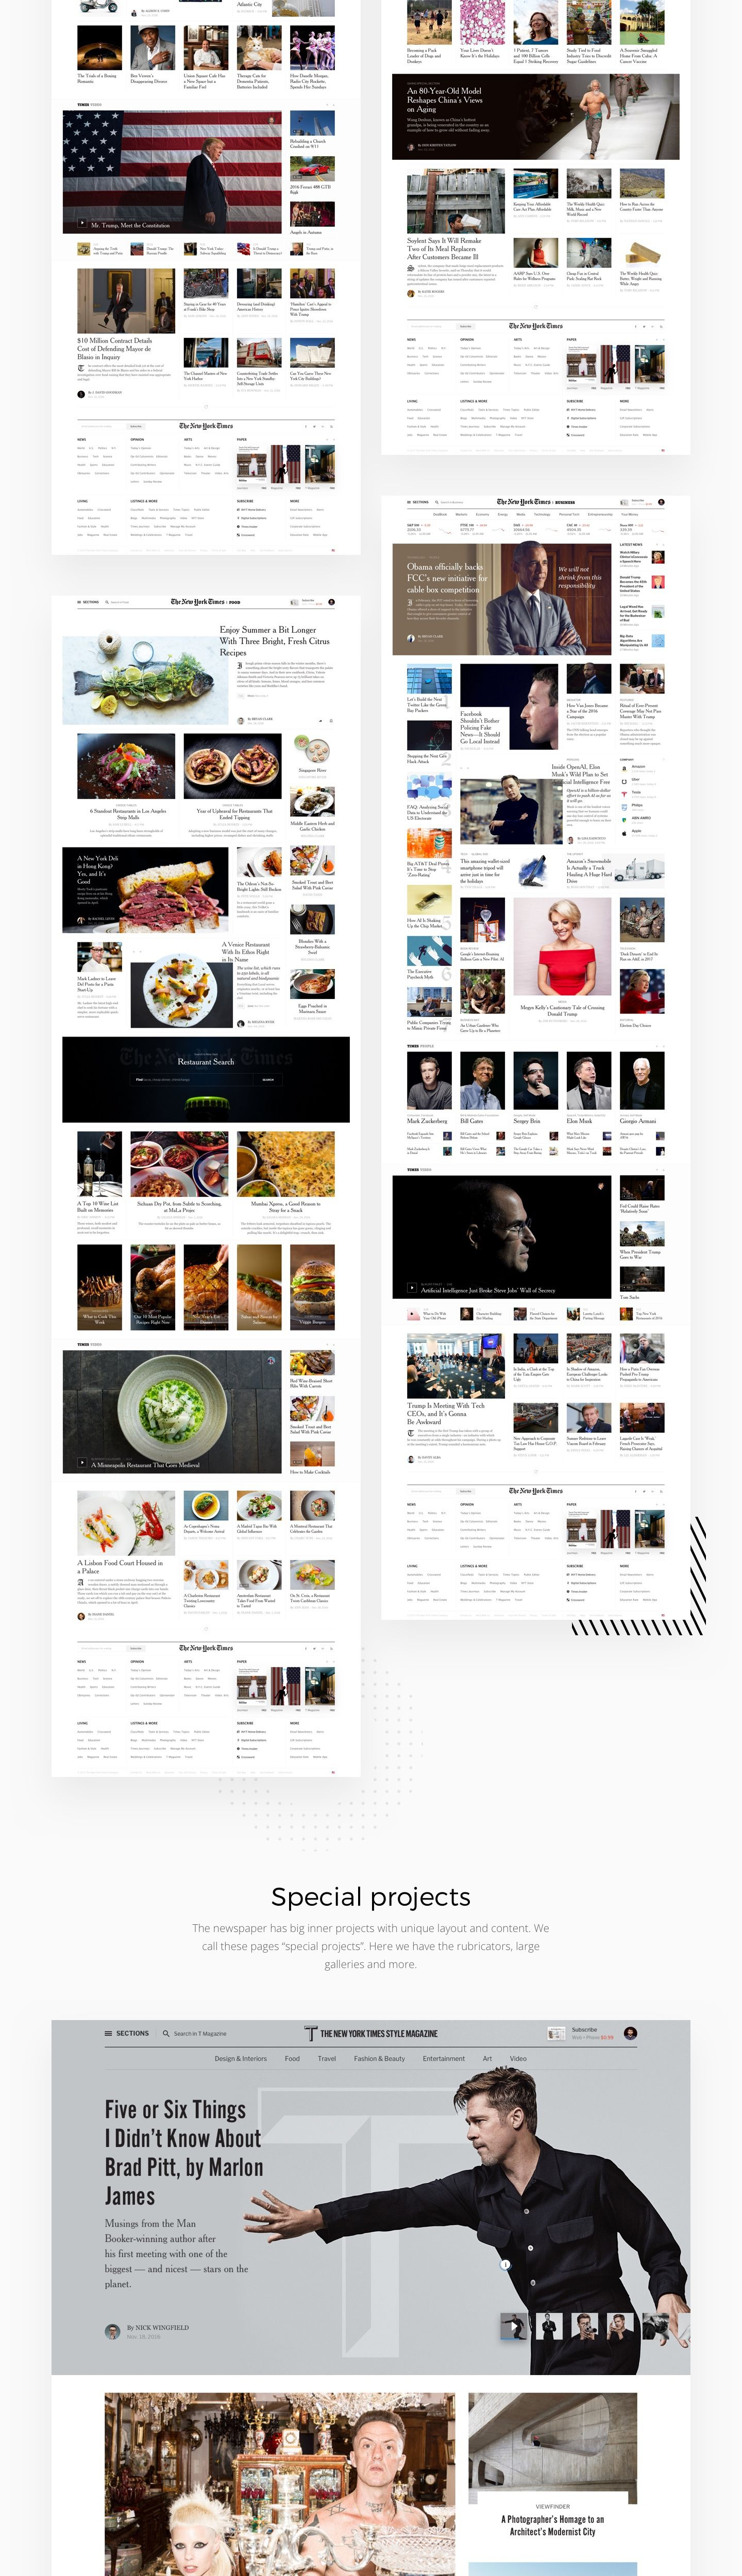 Editorial Design The New York Times Redesign Concept News Web Design Editorial Design Online Store Design